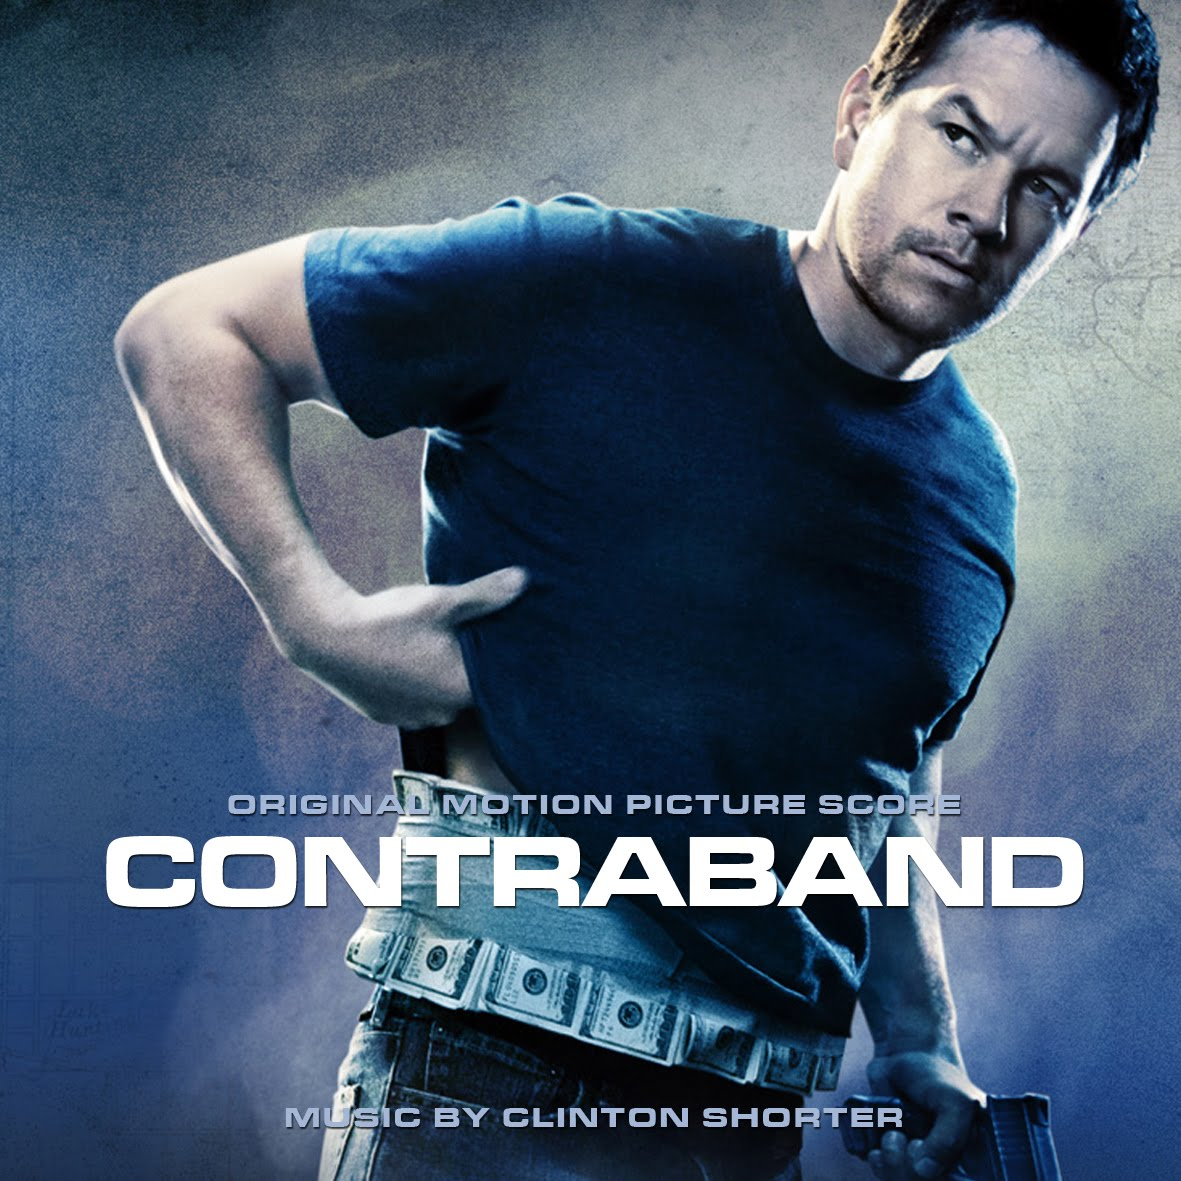 Contraband 2012 Soundtrack List Covers...